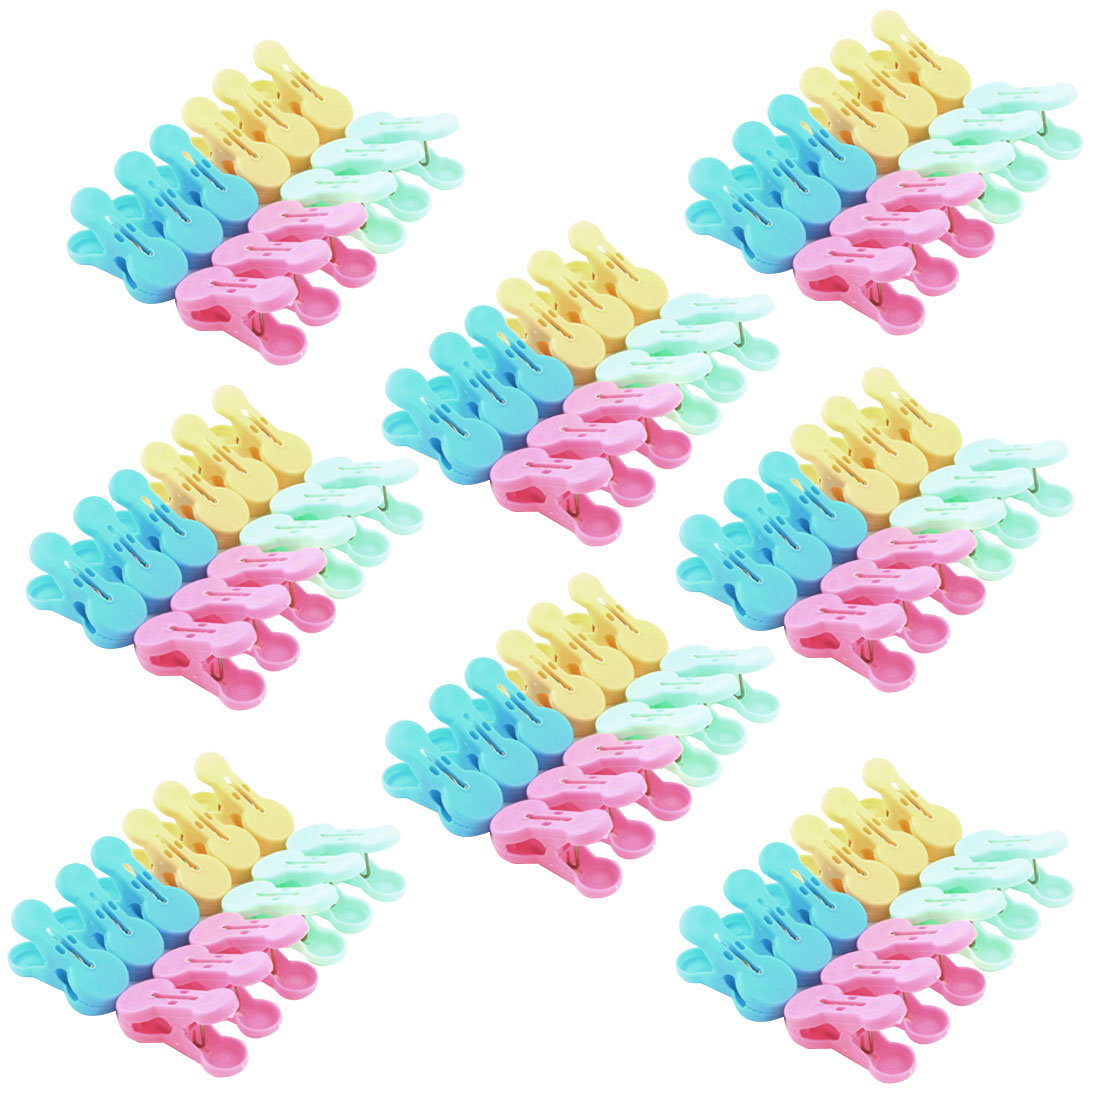 Household Plastic Socks Towel Bag Clothing Clothes Clips Clamp Clothespin 96pcs